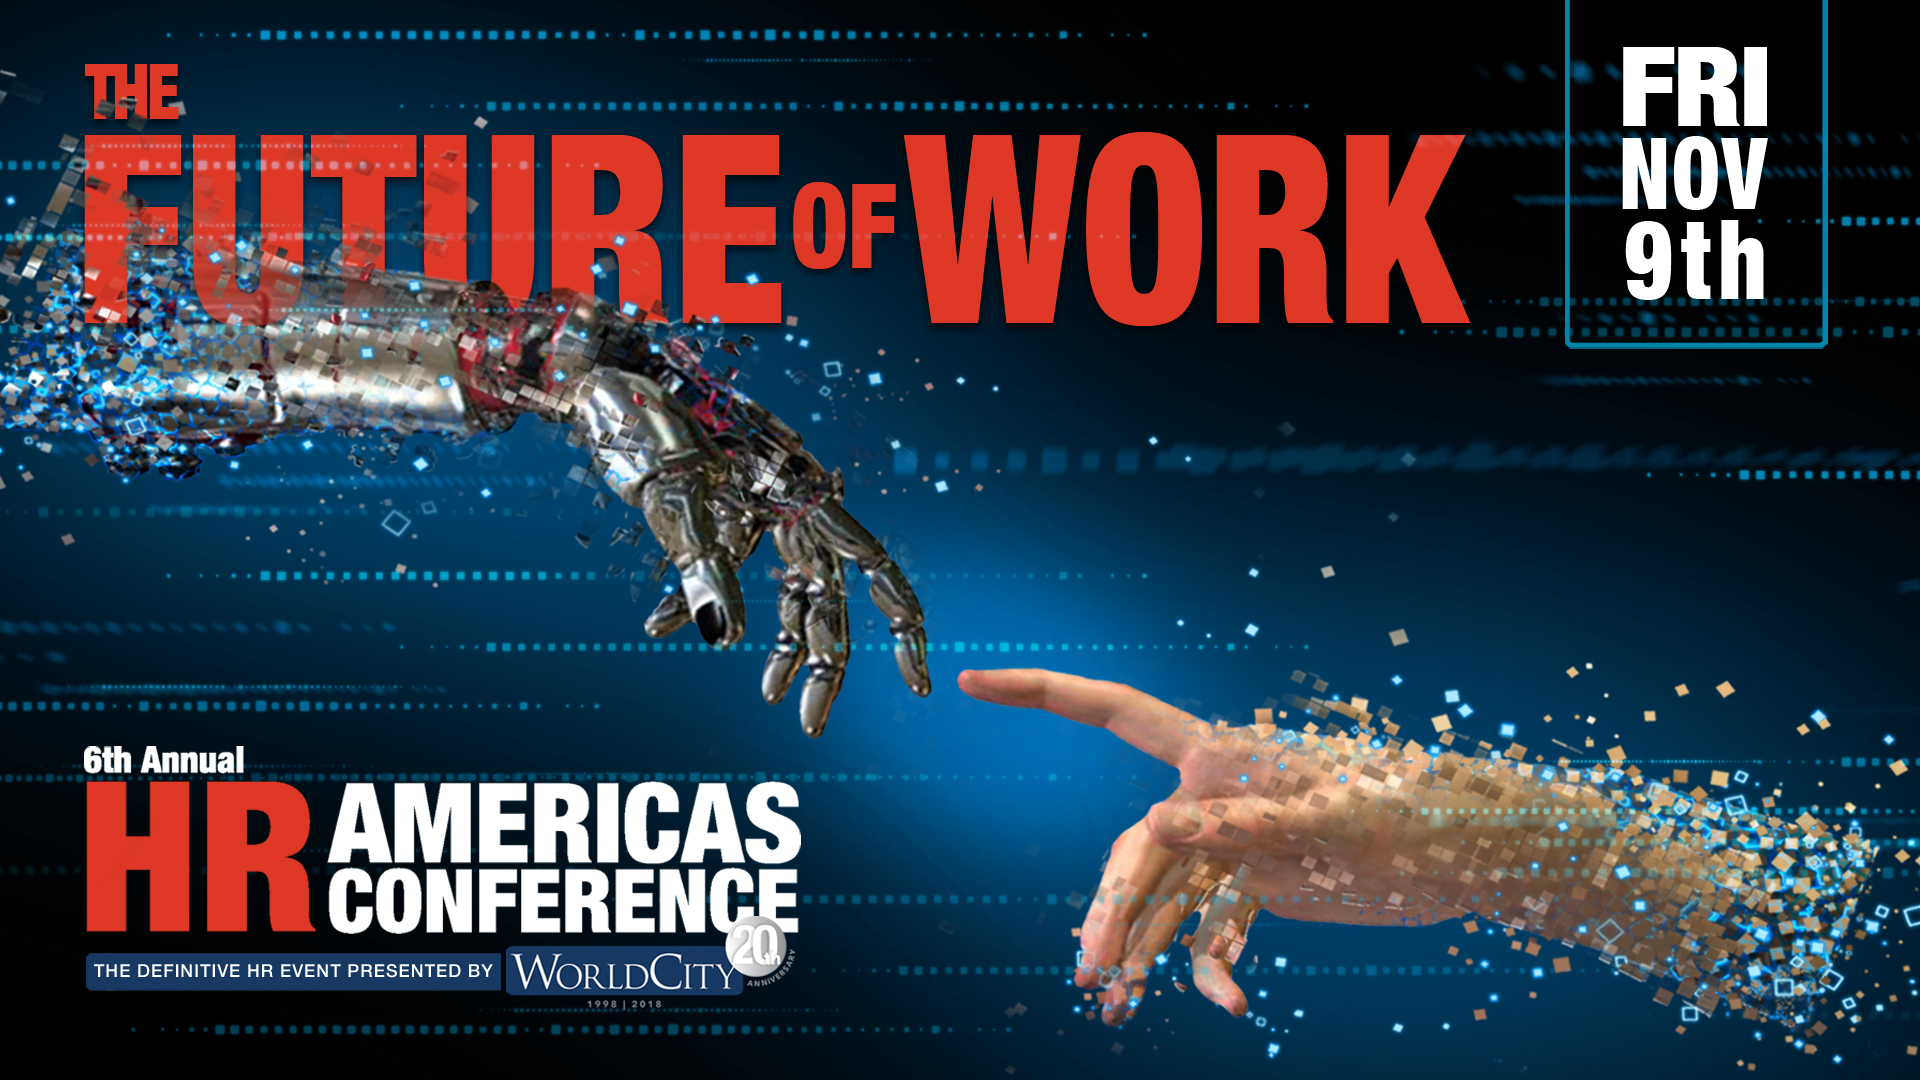 HR Americas - The Future of Work